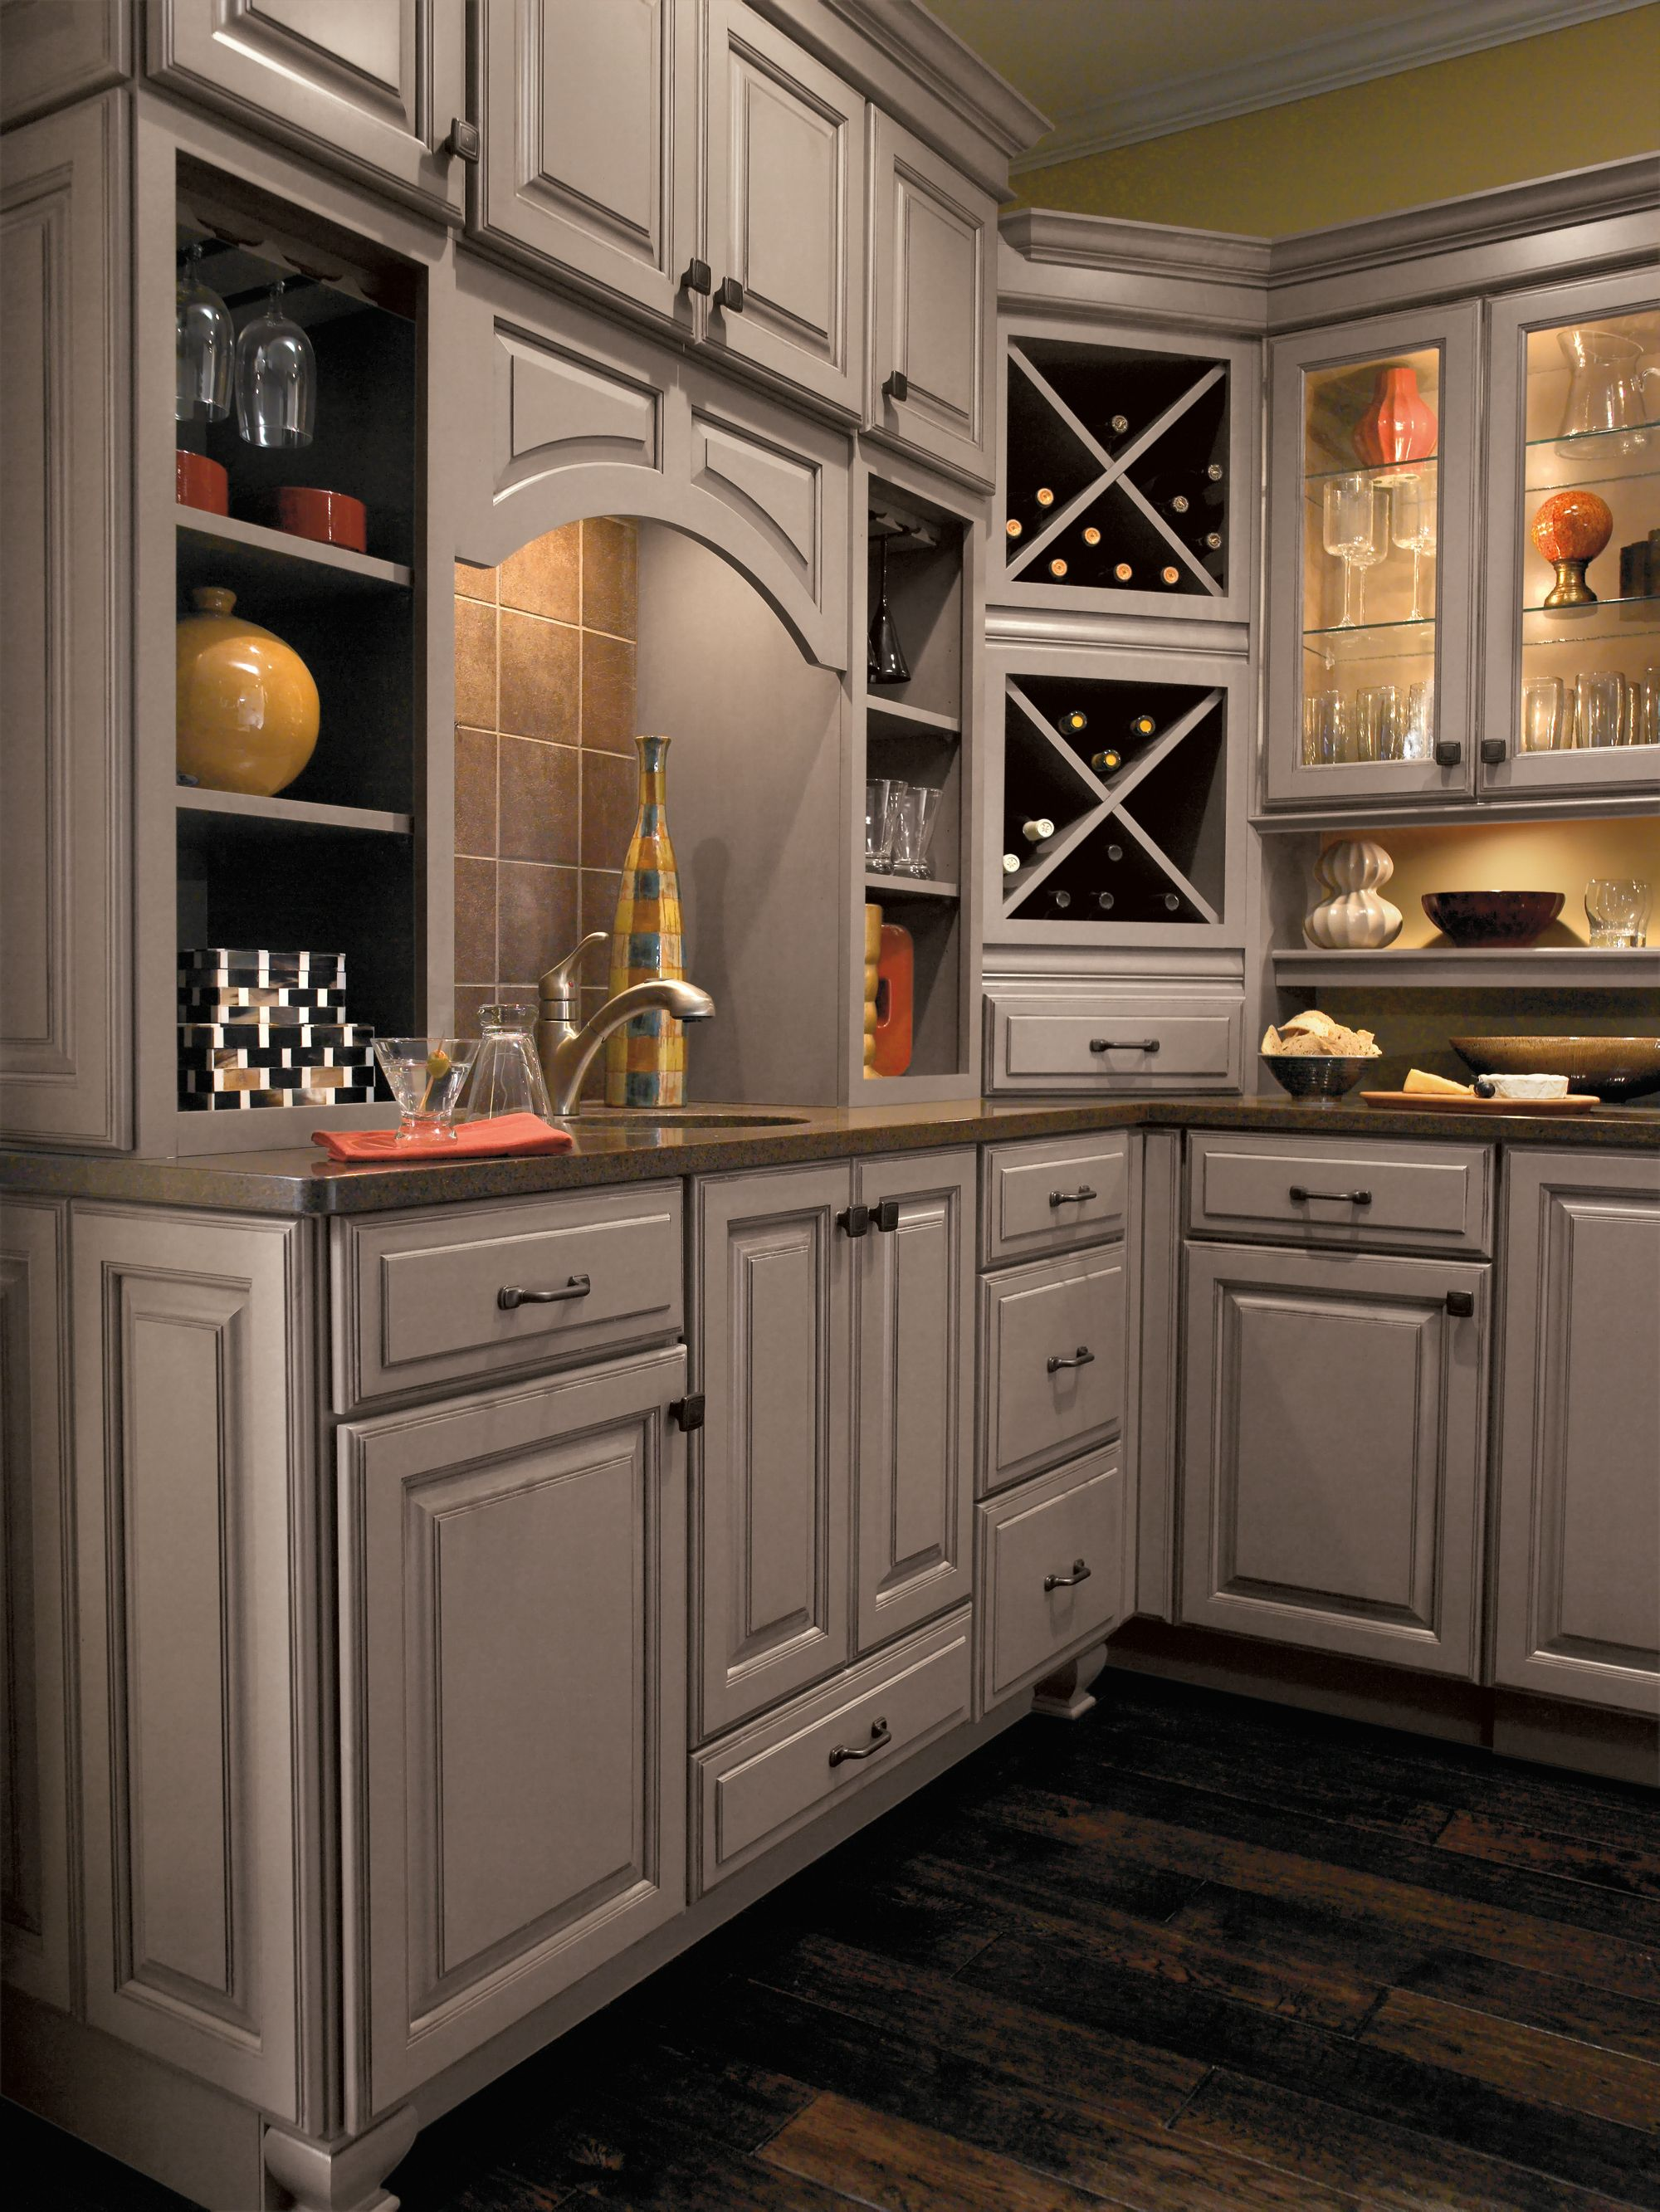 Choose From An Incredible Selection Of Kitchen Cabinets At DirectBuy.  Contact DirectBuy Today To See How The Beautiful Cabinets You Dream About  Are Within ...